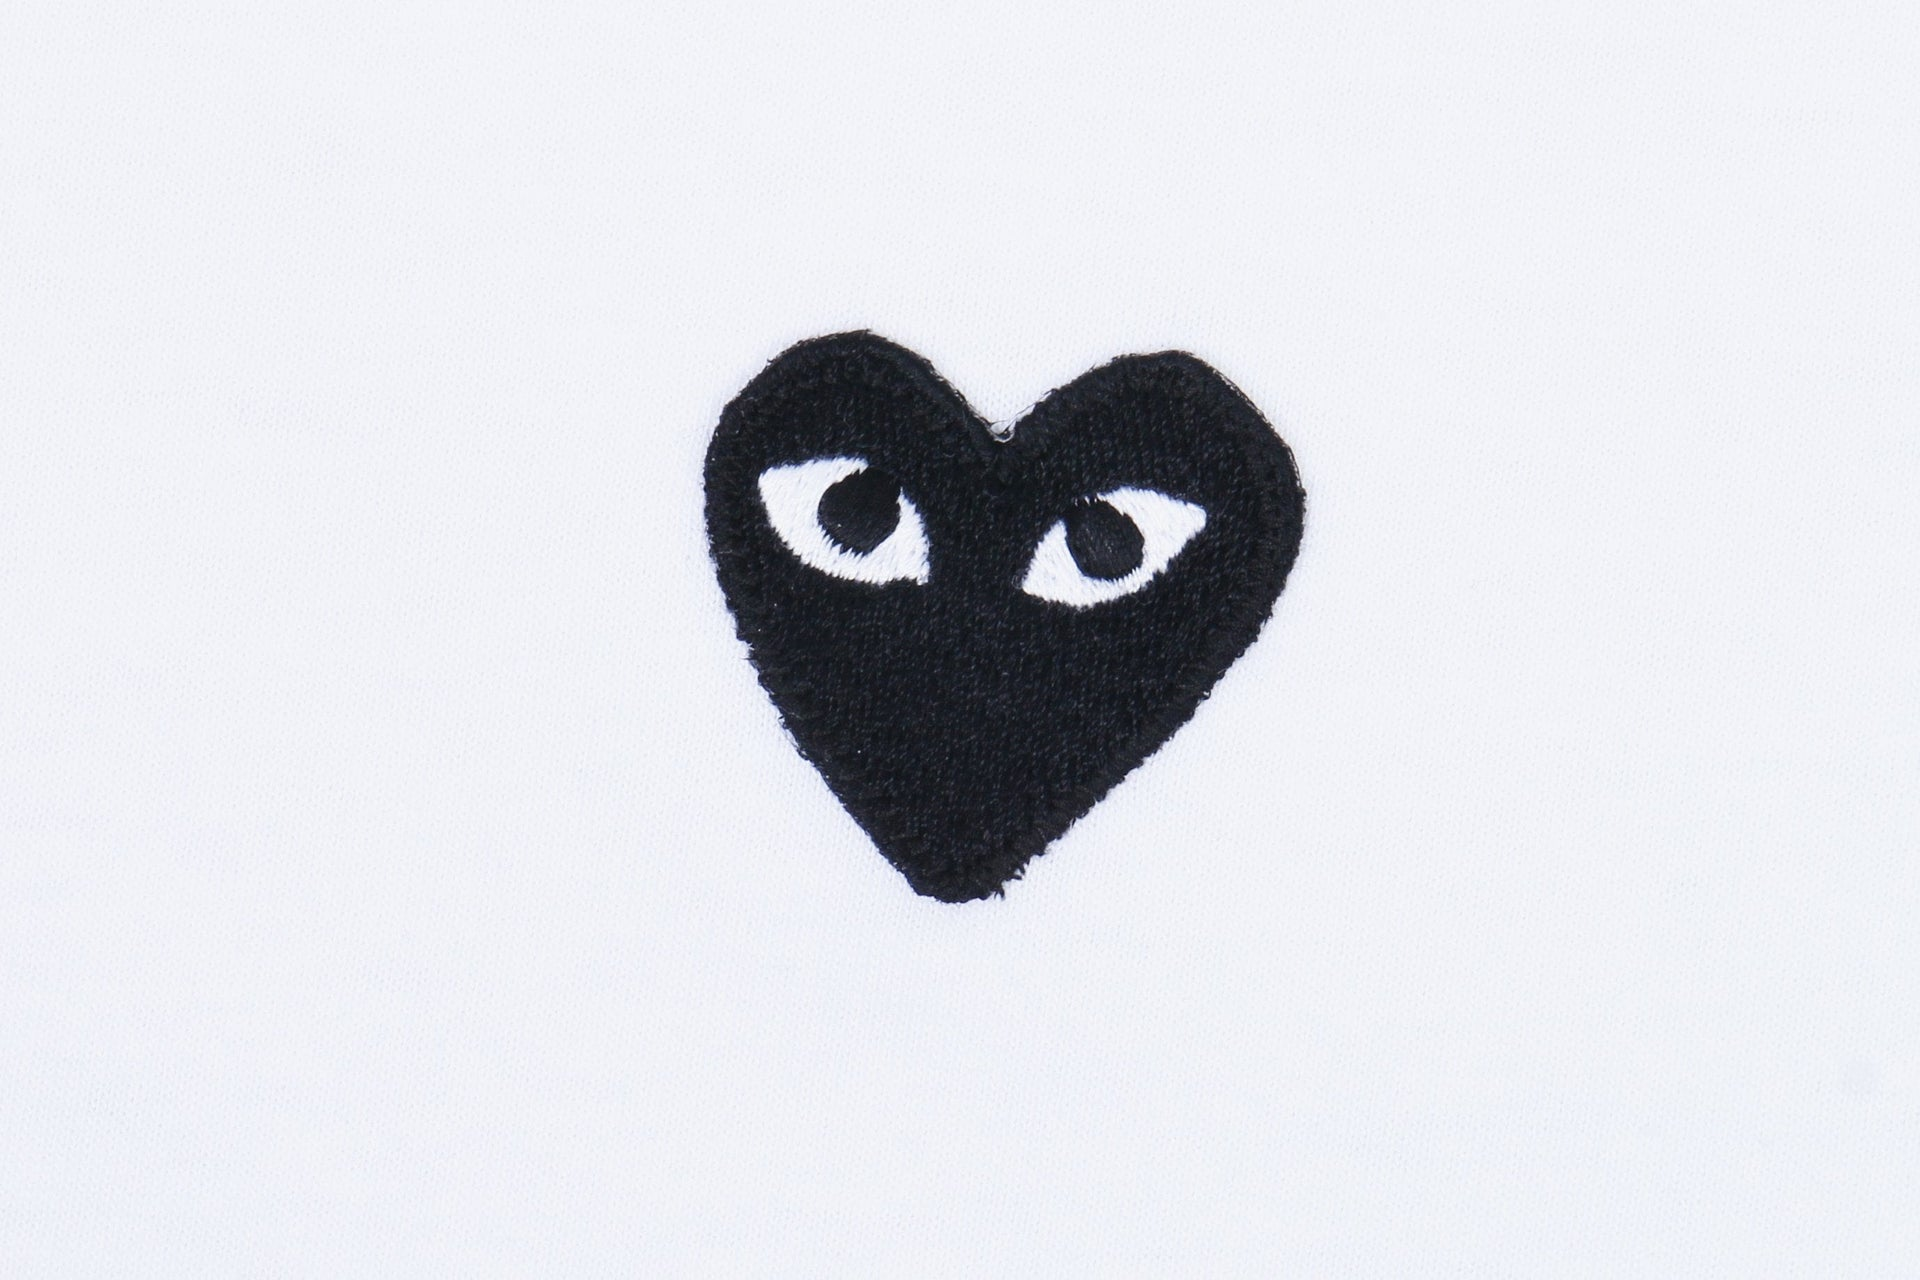 SMALL HEART WHT/BLK MENS SOFTGOODS COMME DES GARCONS